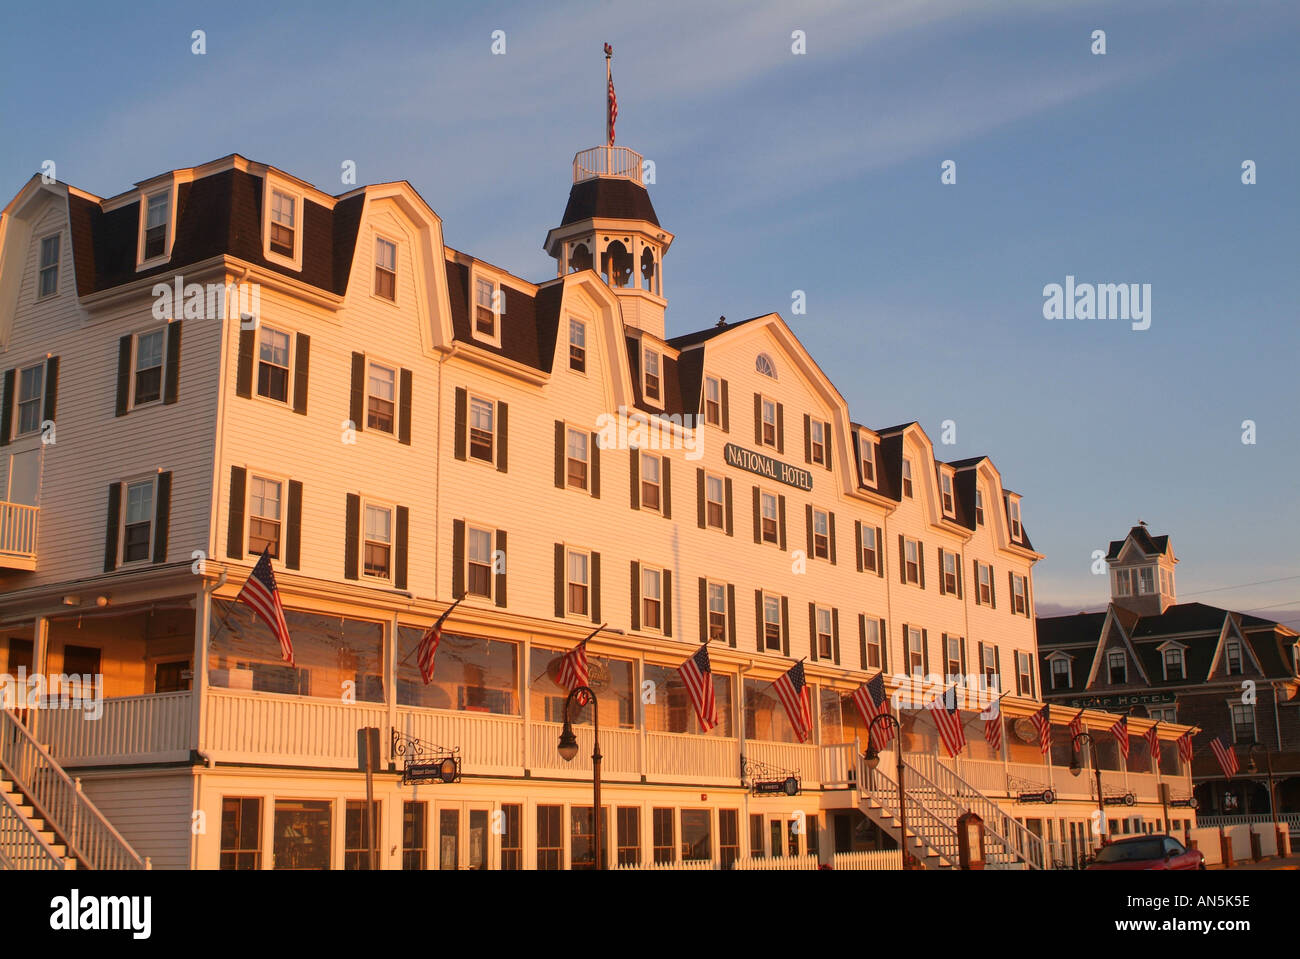 The National Hotel, Block Island, Rhode Island with Flags Historic Inn at Dawn - Stock Image